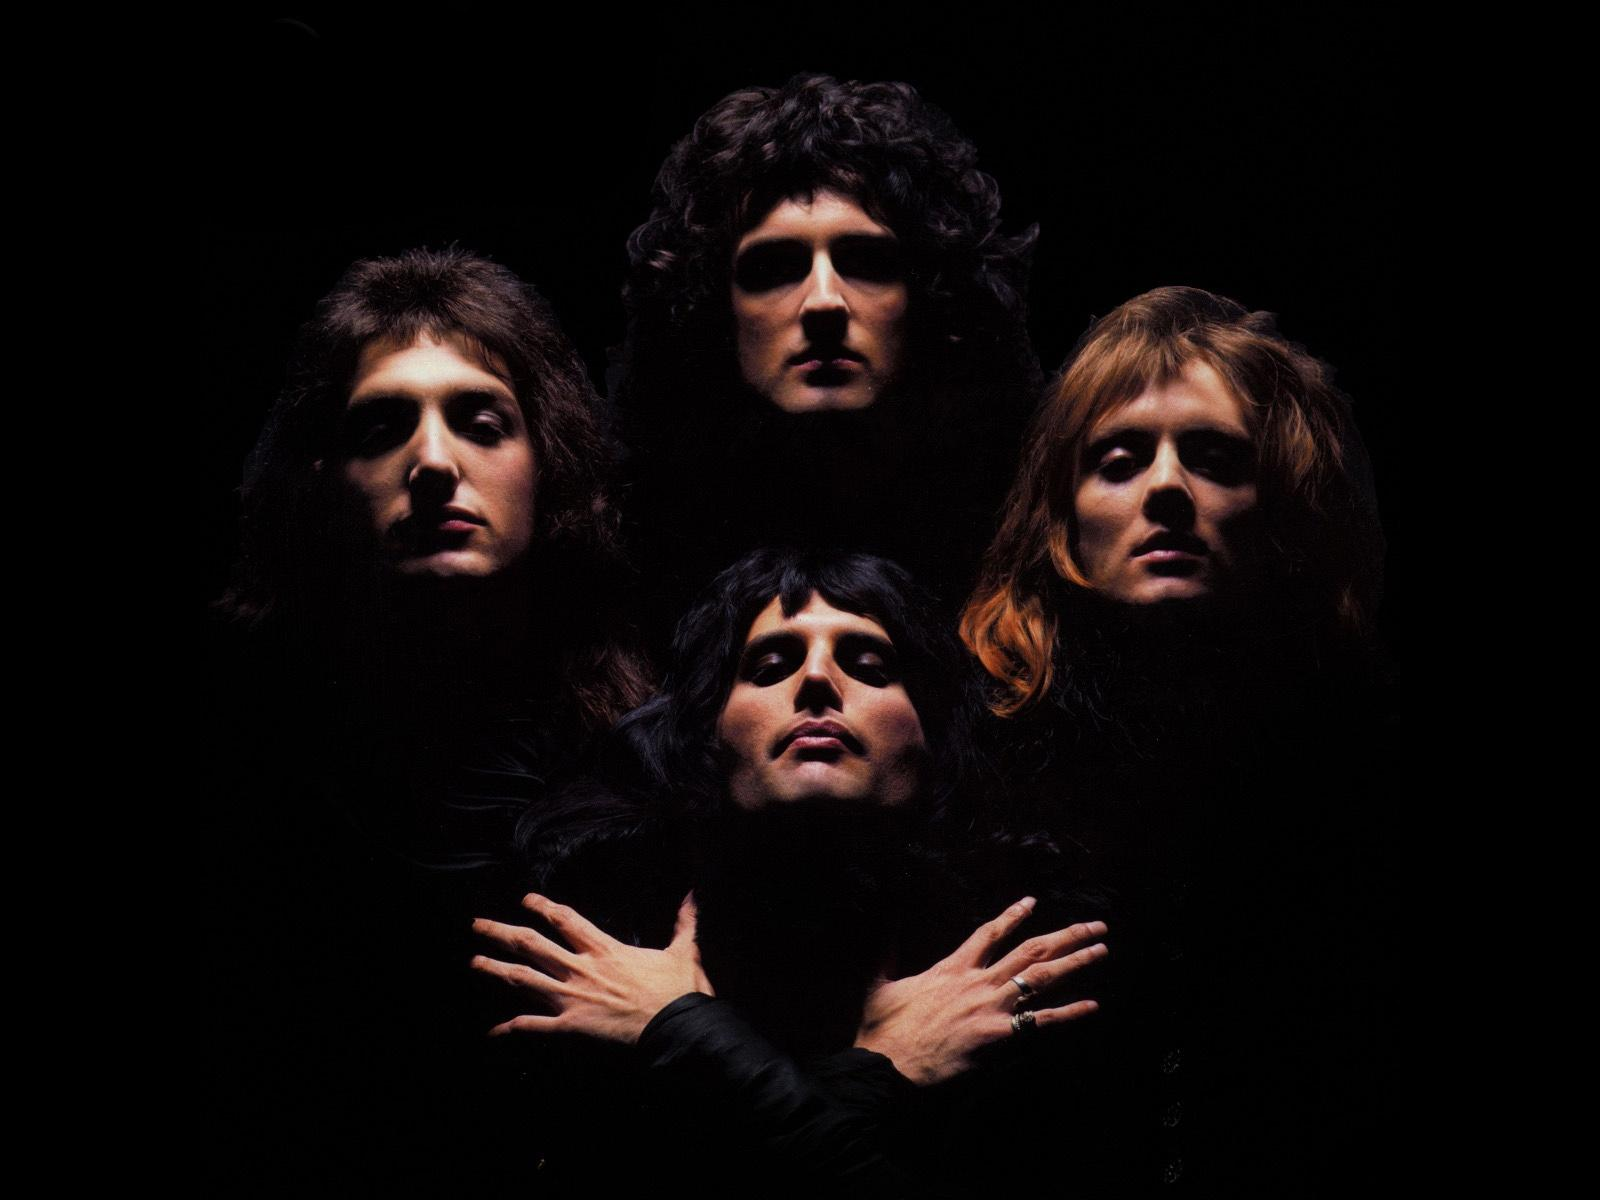 queen-band-hd-and-top-widescreen-from.jpg